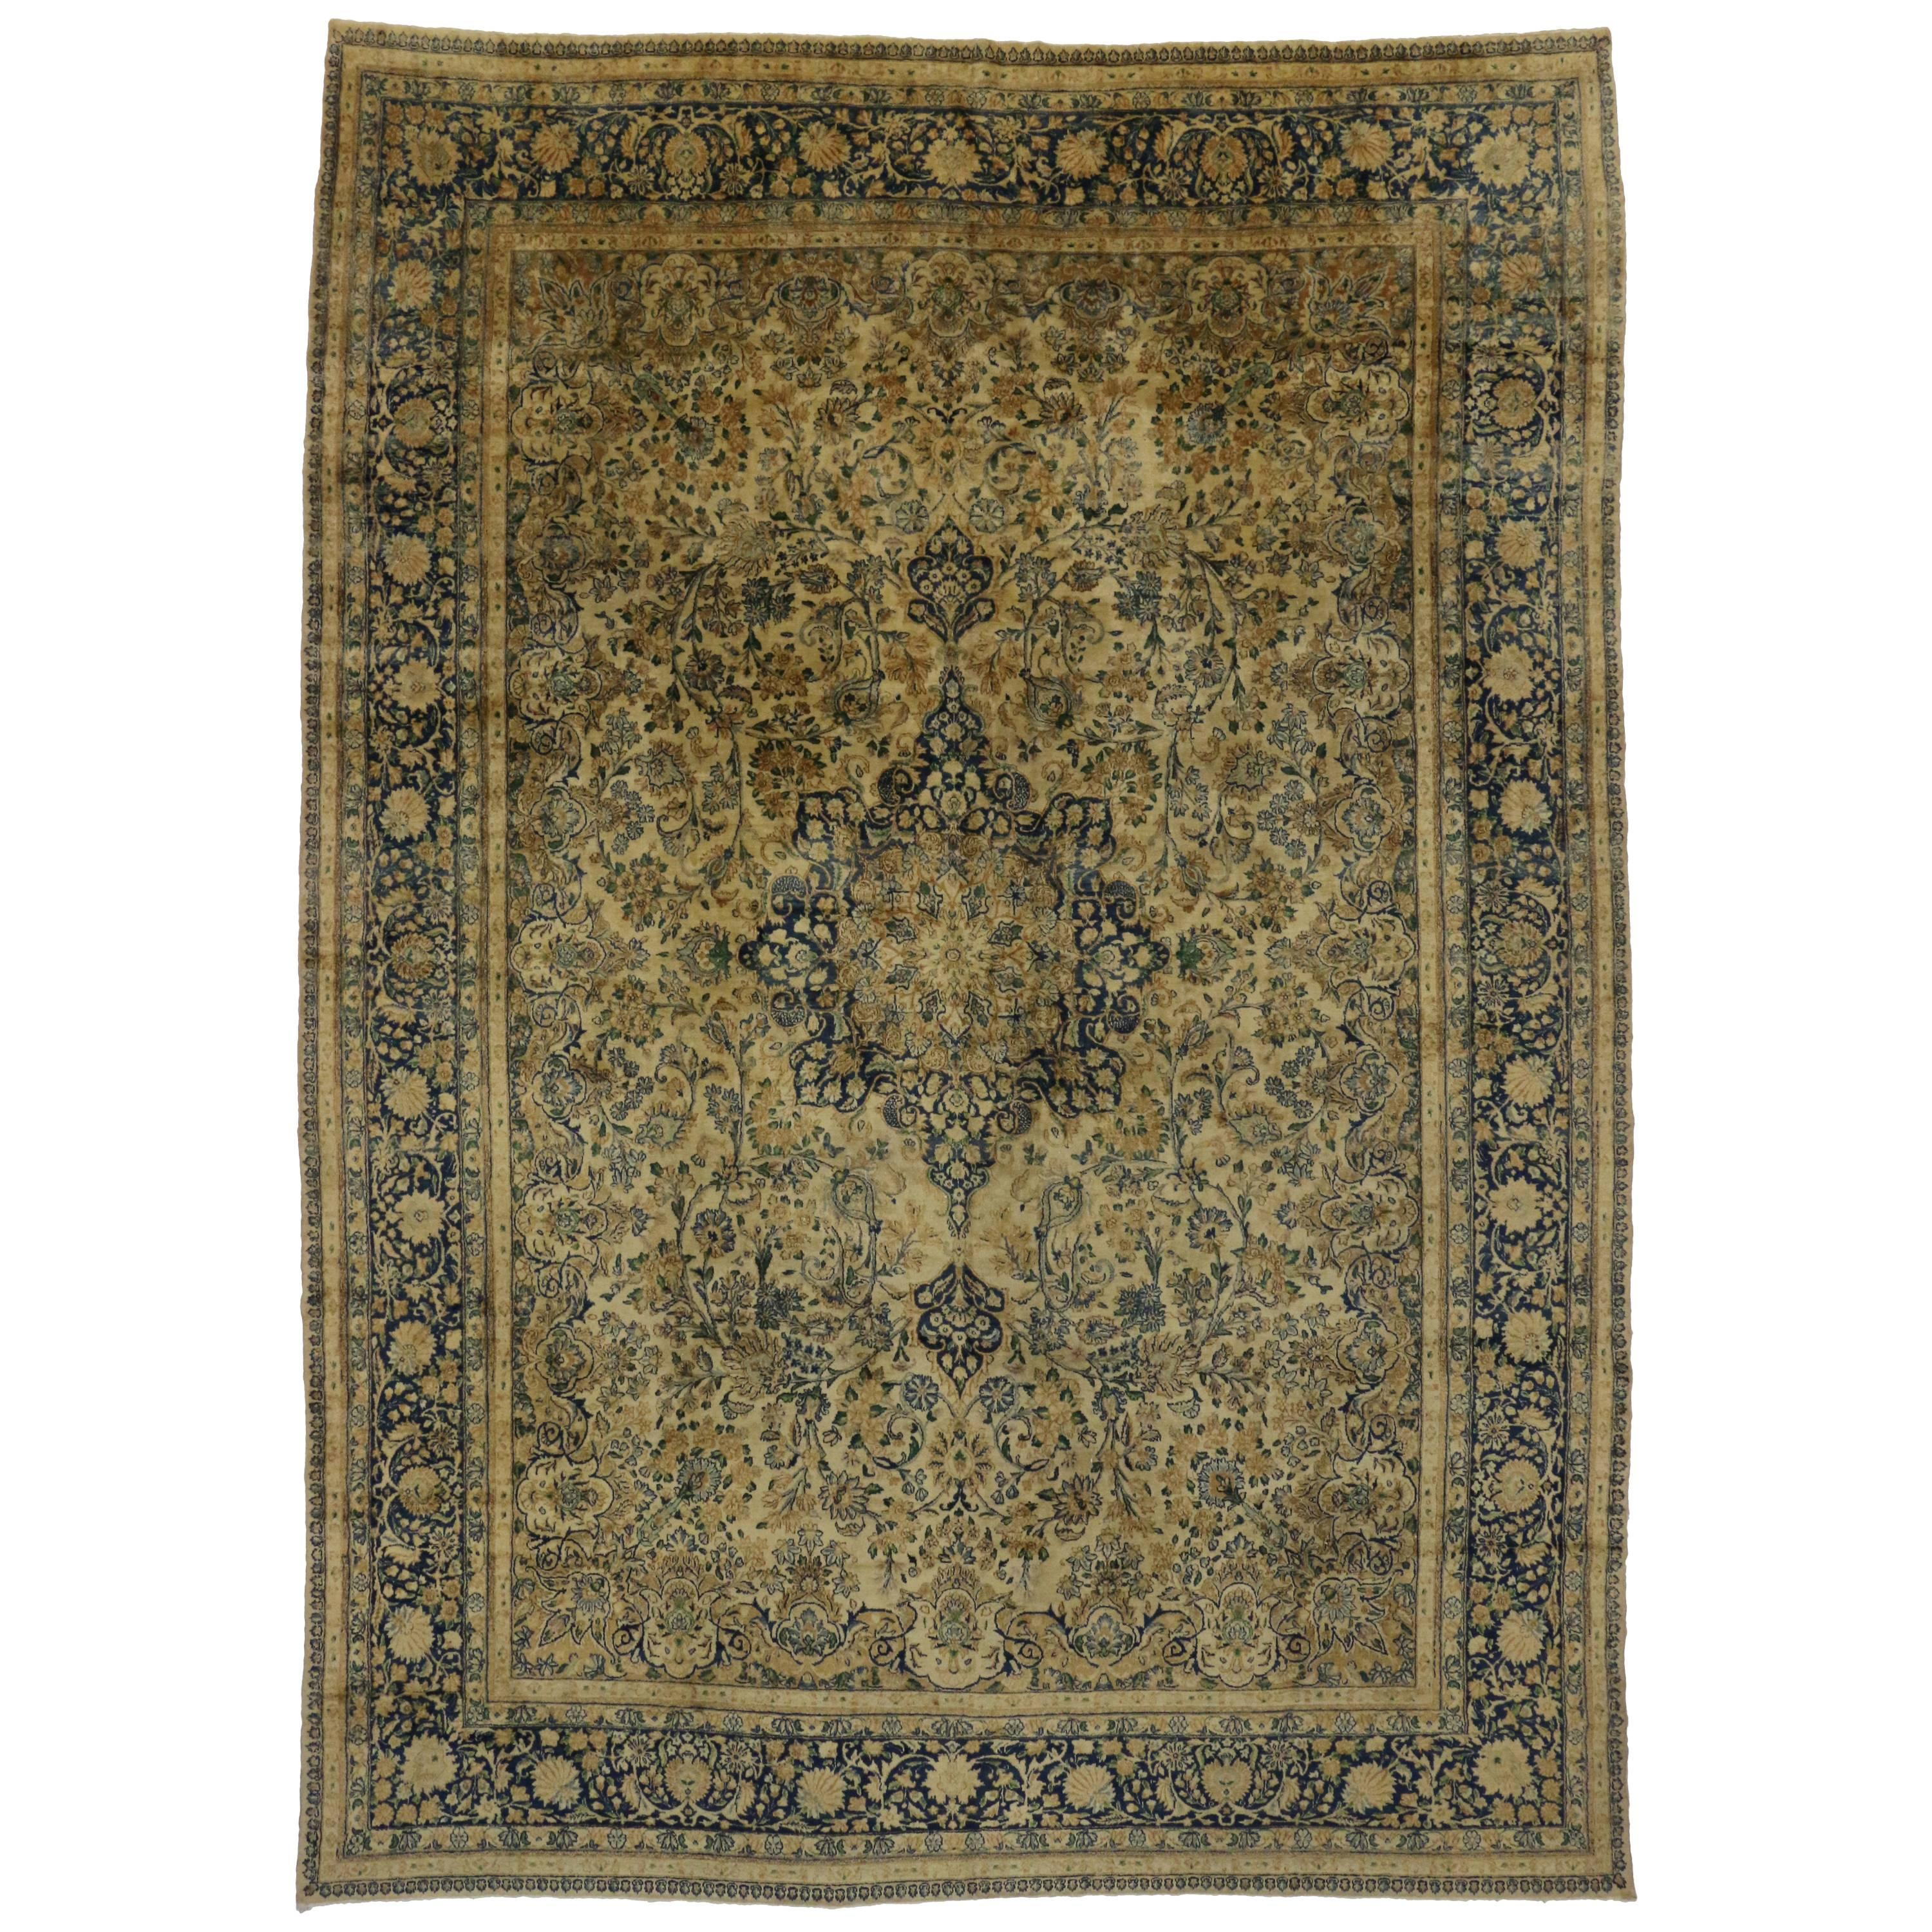 Antique Persian Kerman Rug with Hollywood Regency Style